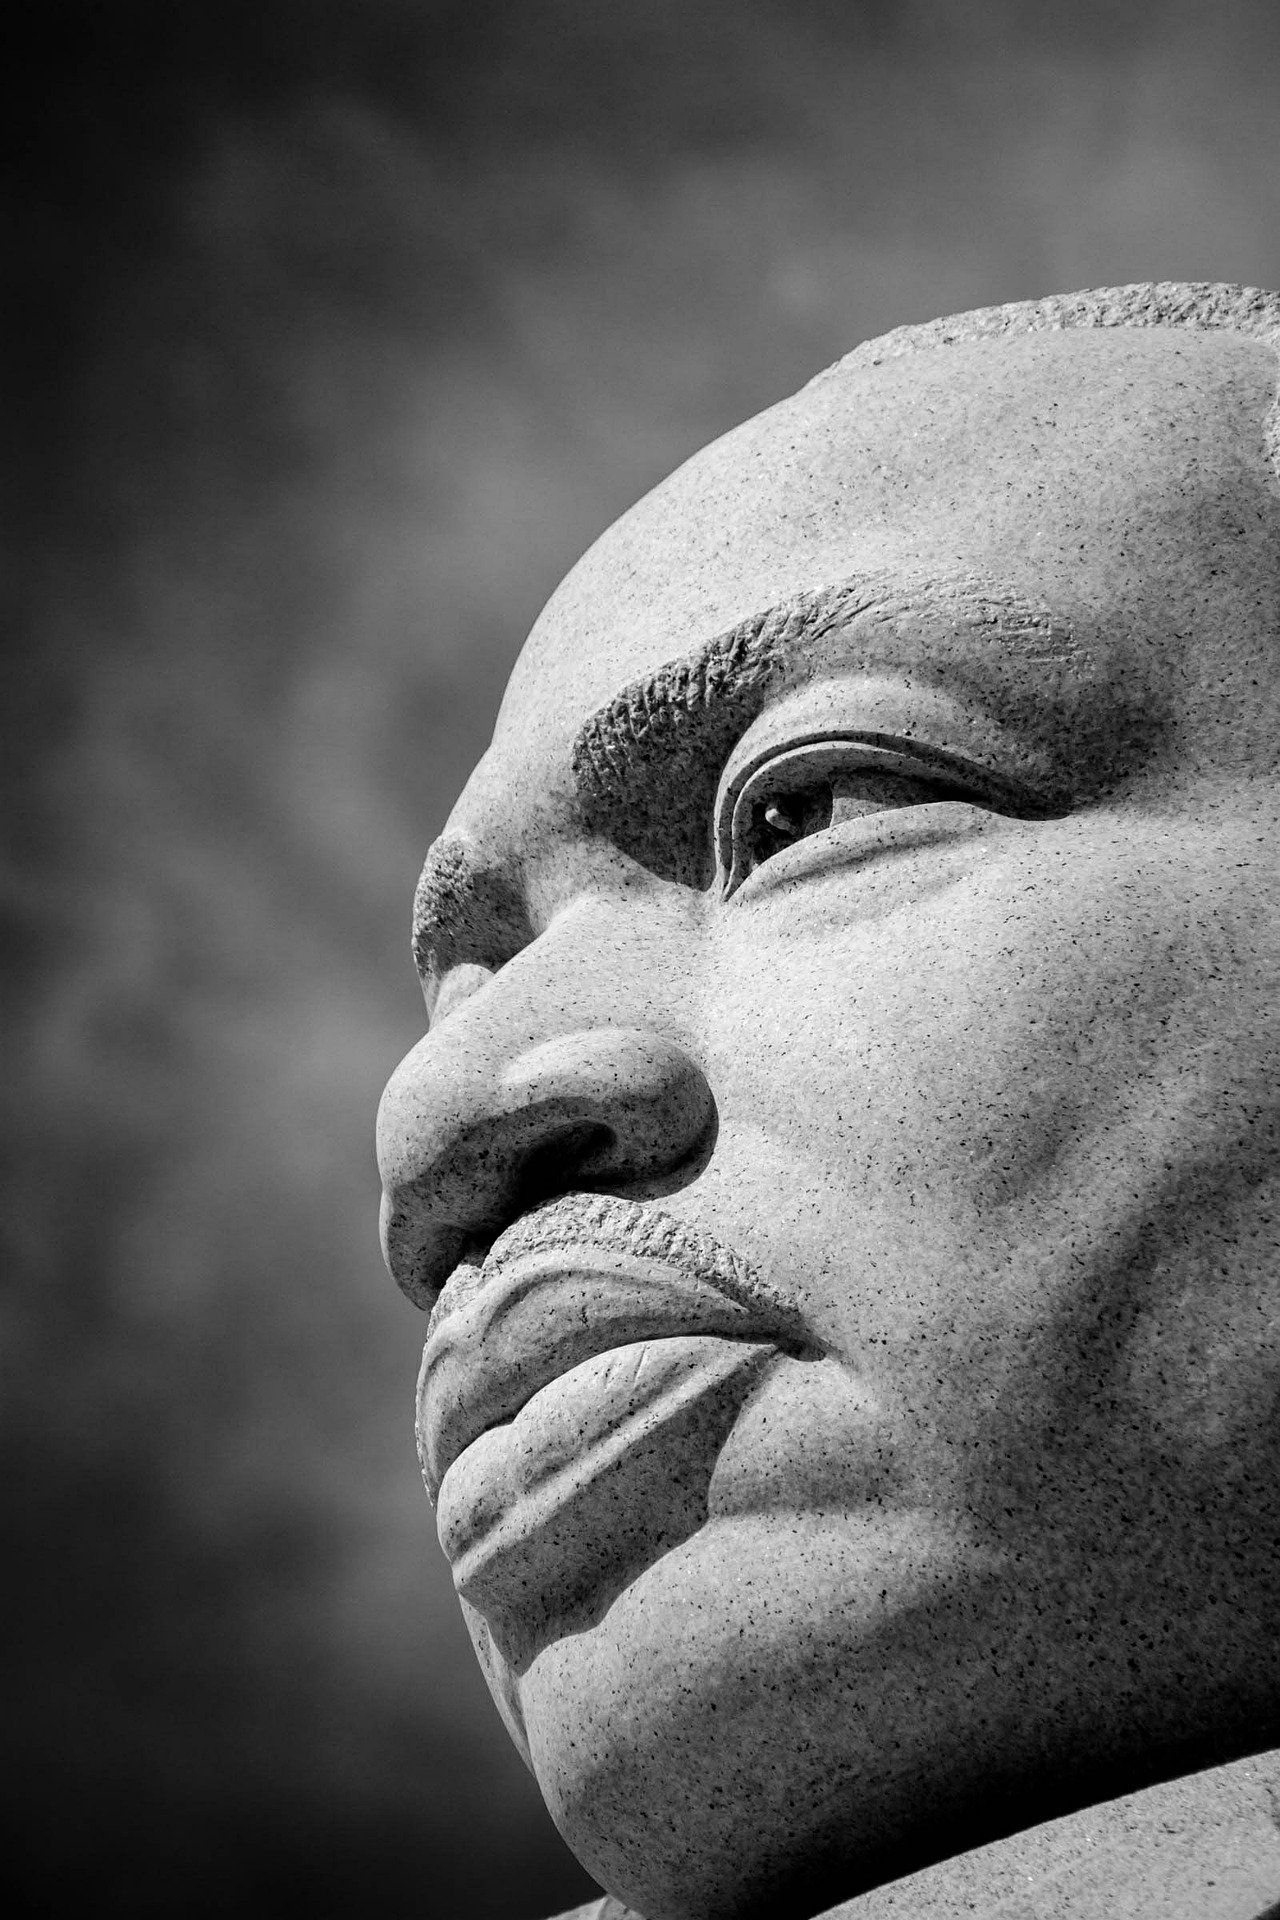 martin-luther-king monument detail (Image by LuAnn Hunt from Pixabay)